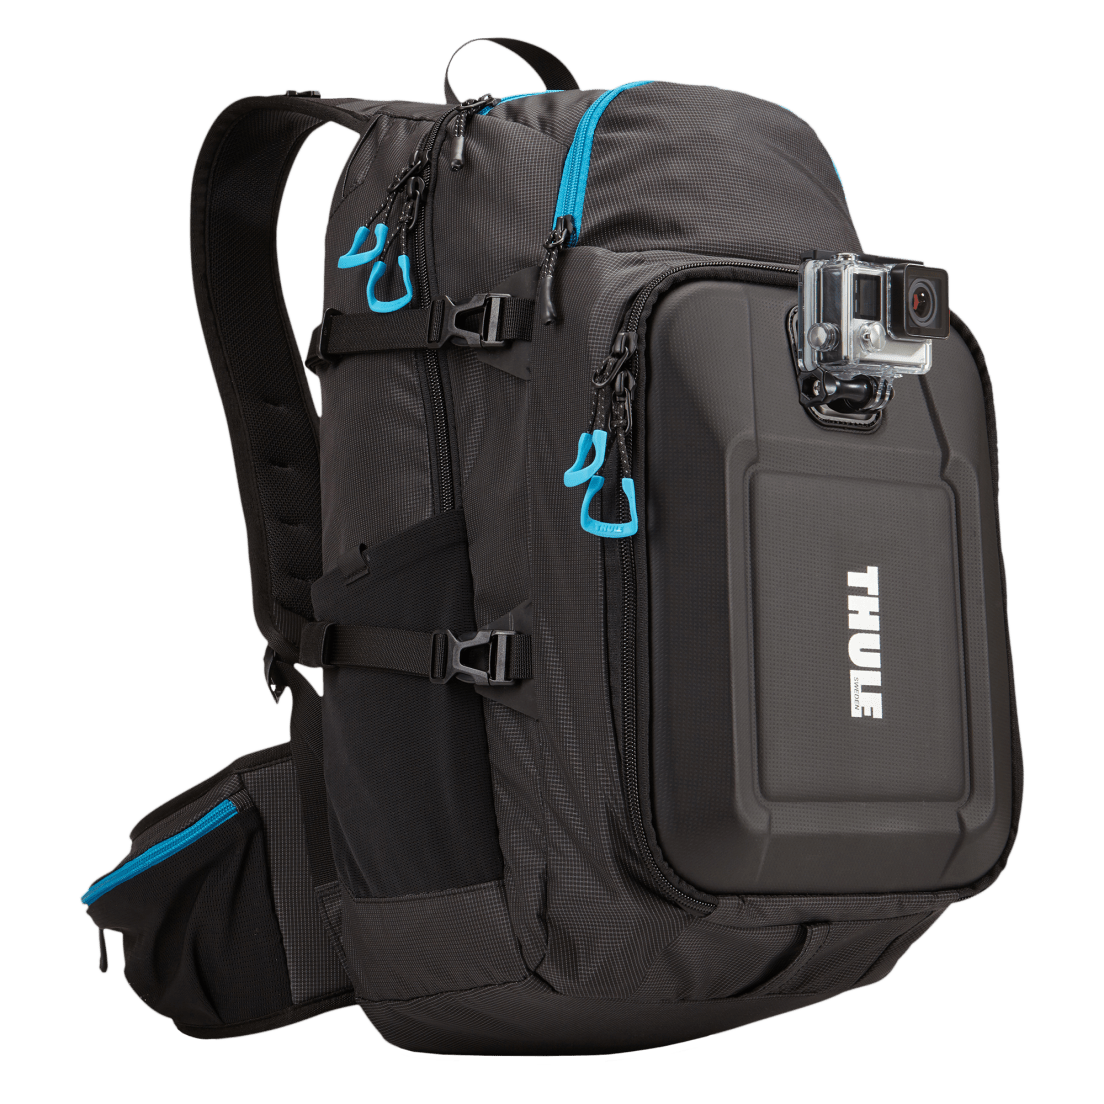 88a7914af675 Thule Legend Backpack with Dual GoPro® Mounts   Crushproof Storage